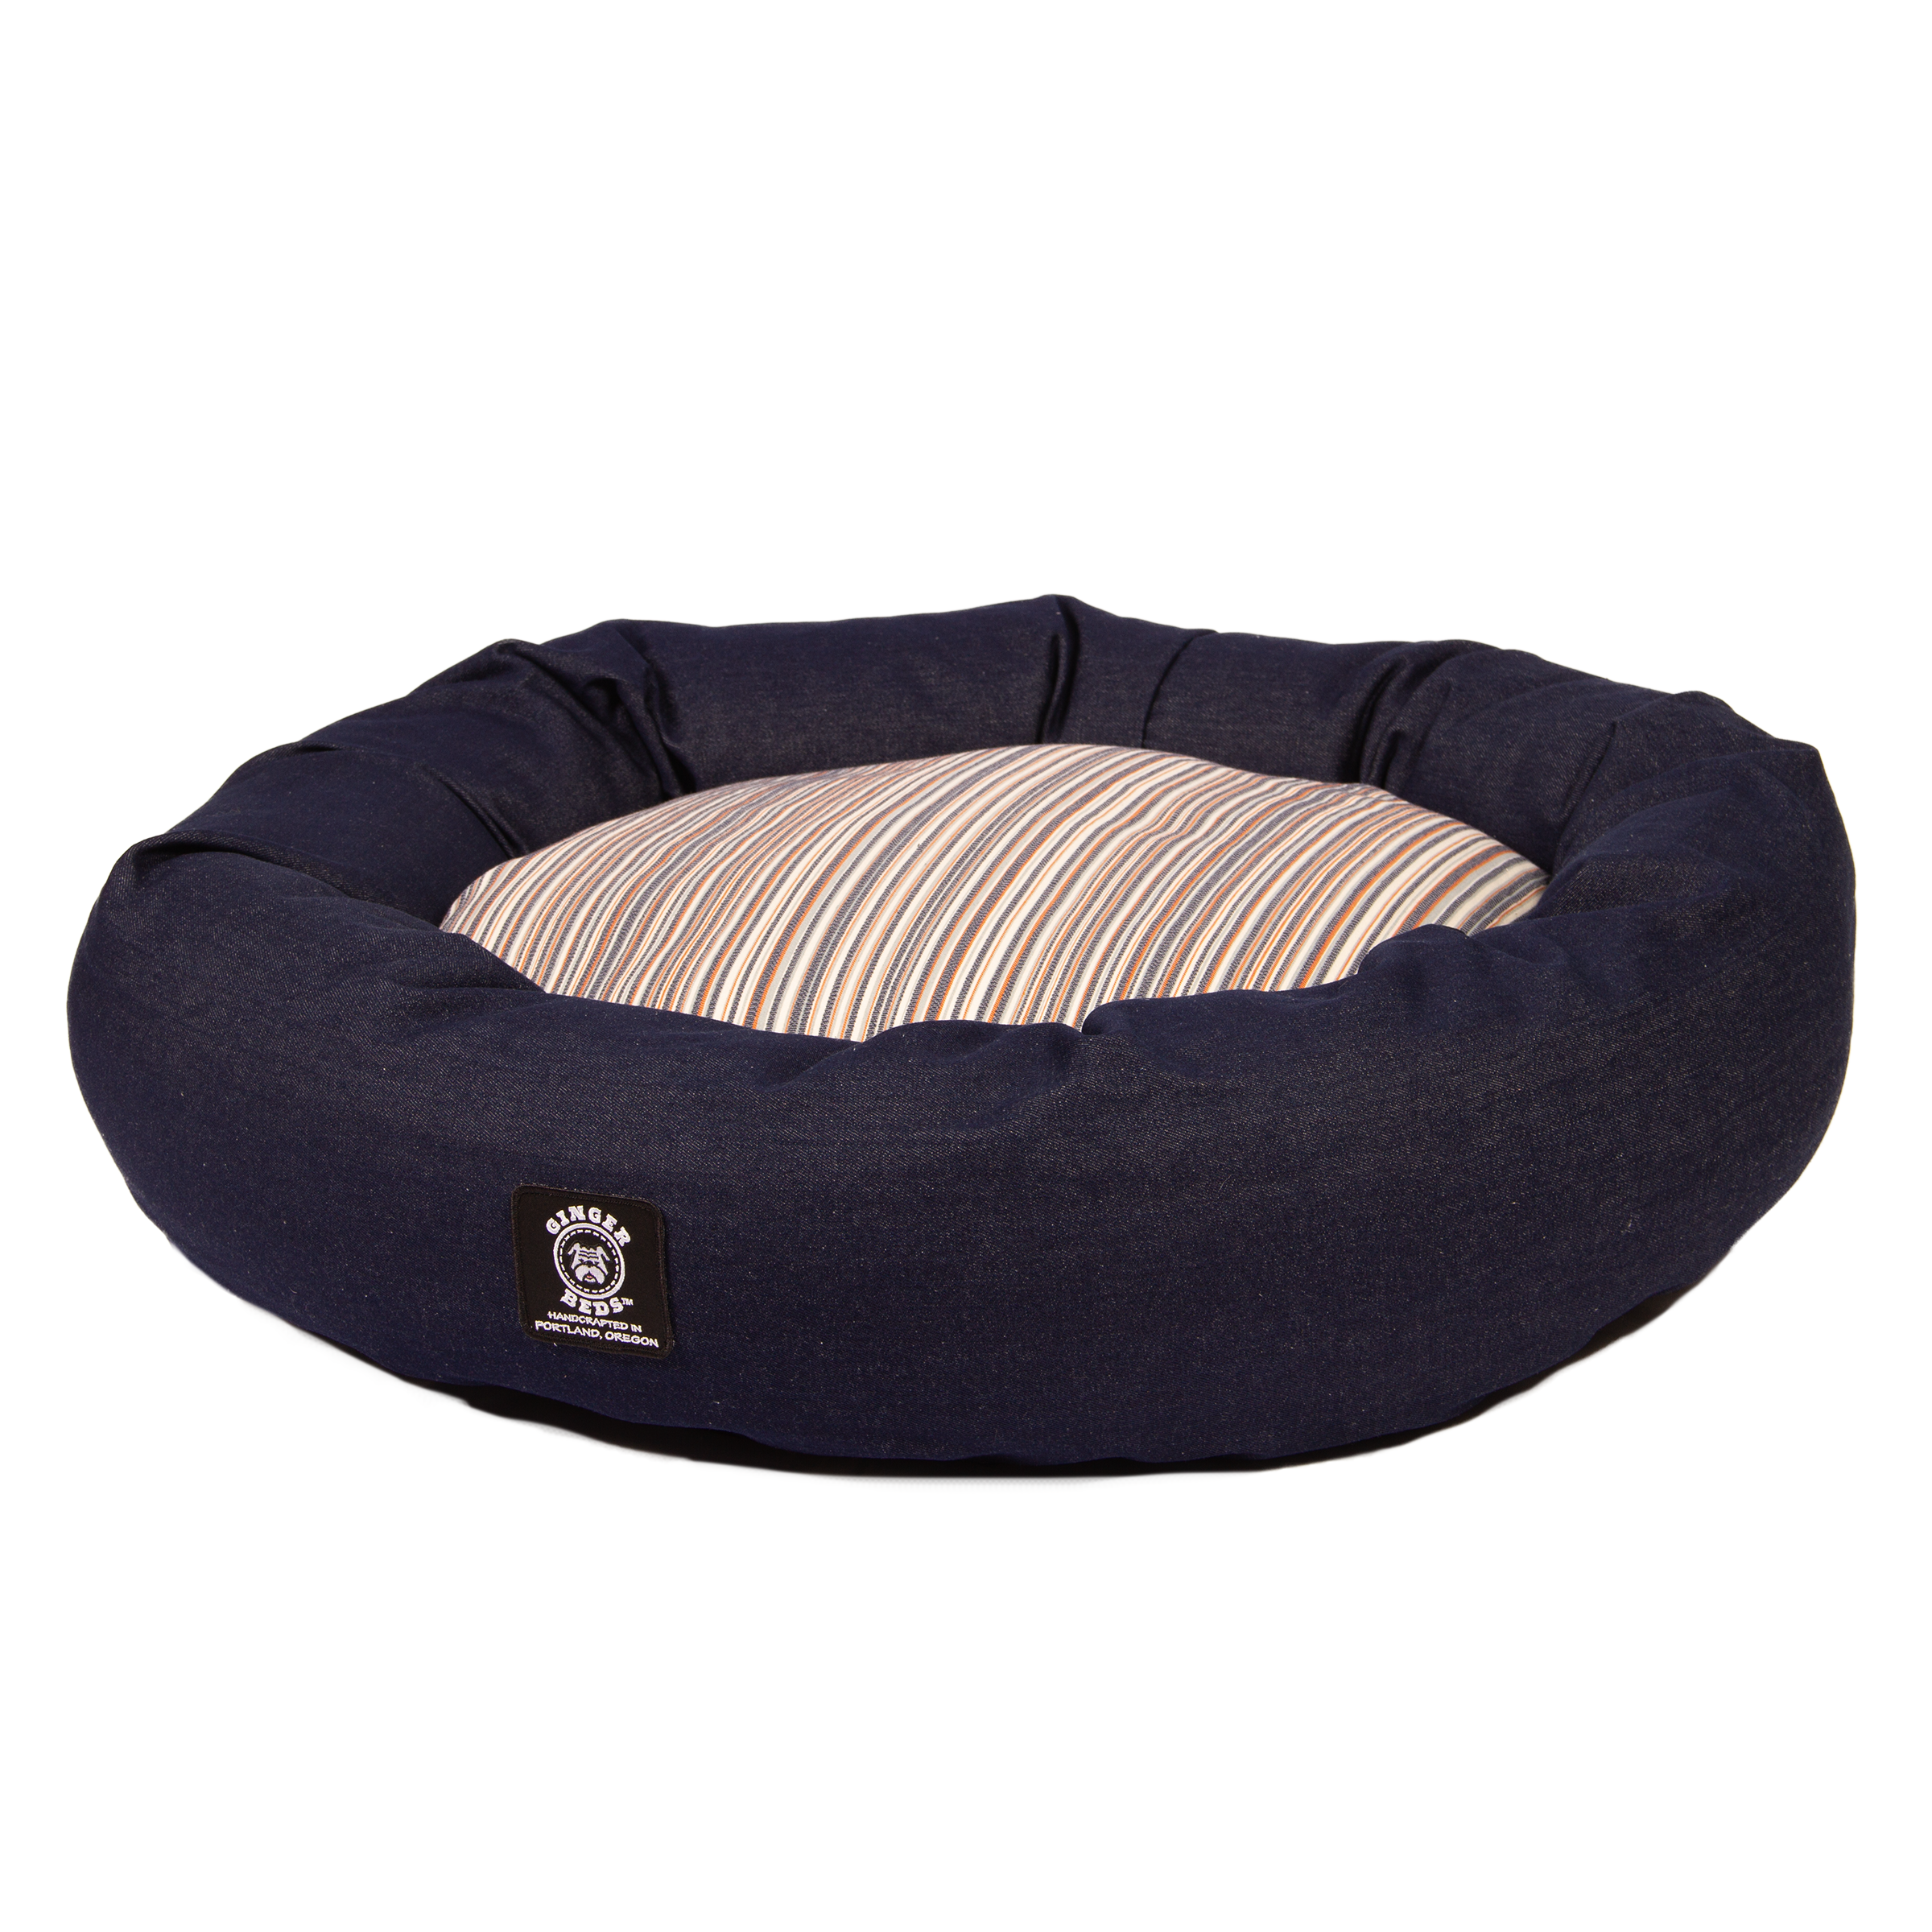 Cat bed PNG Images.